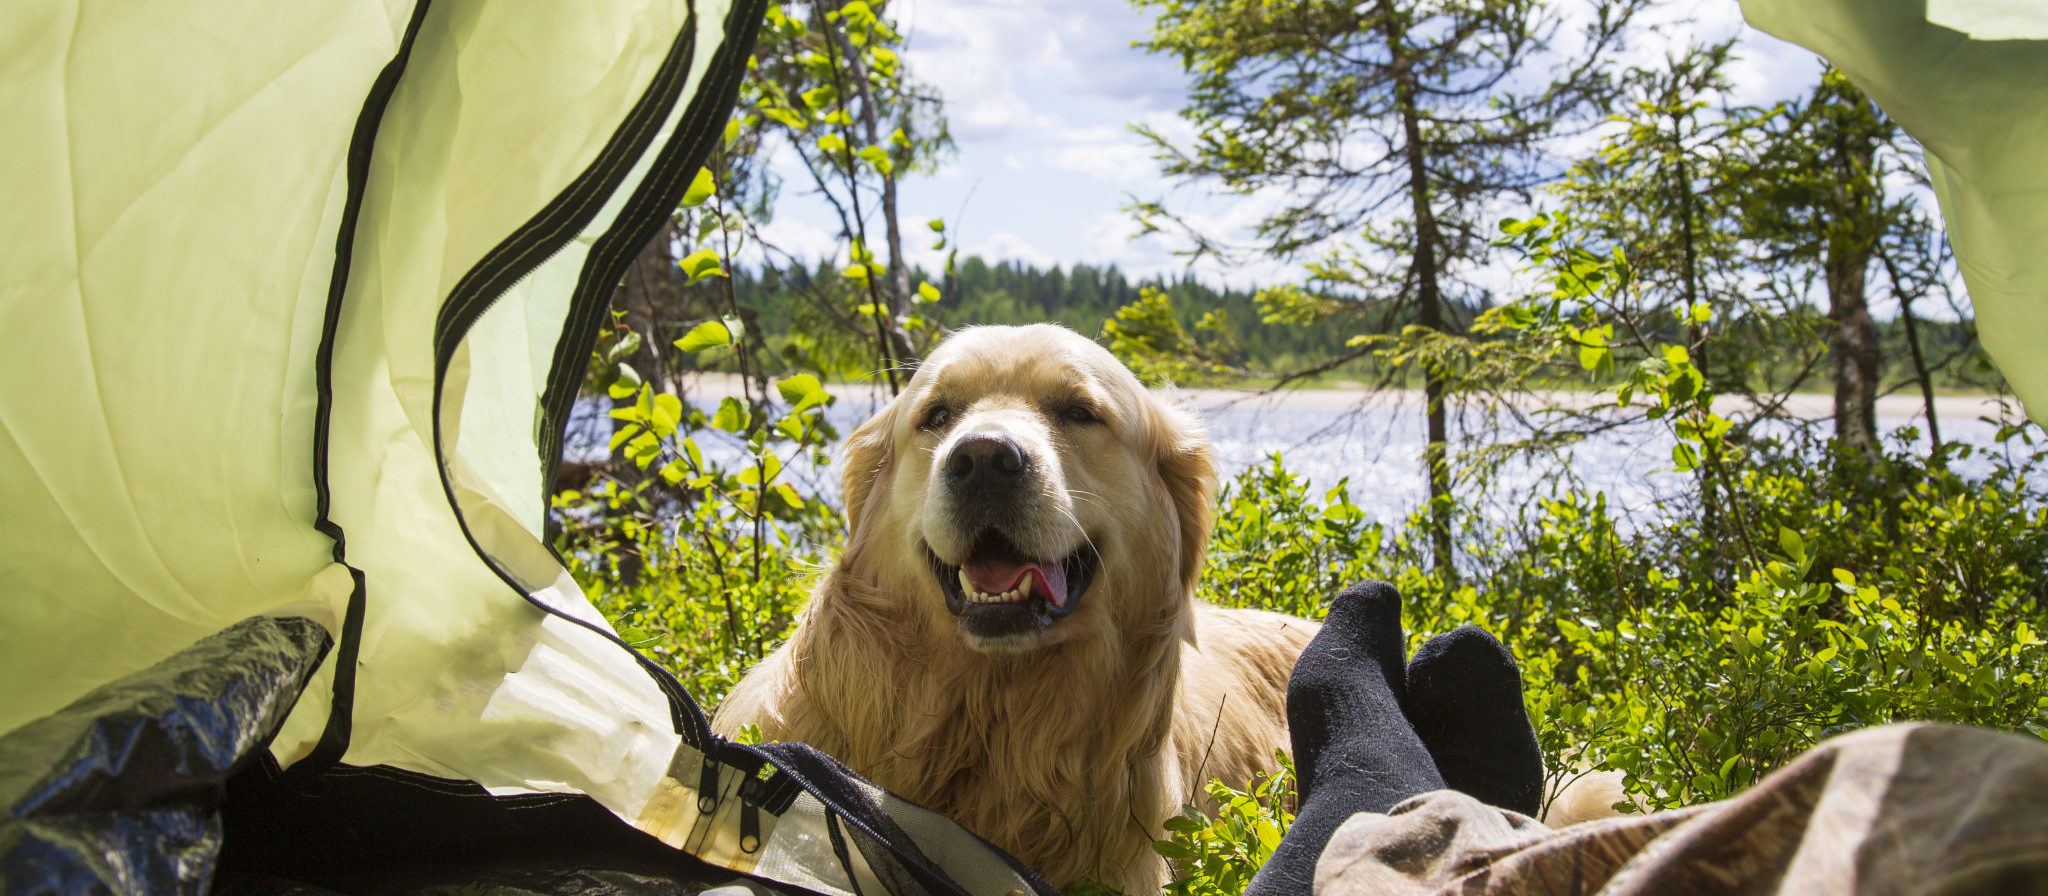 Camping with a Dog in a Tent